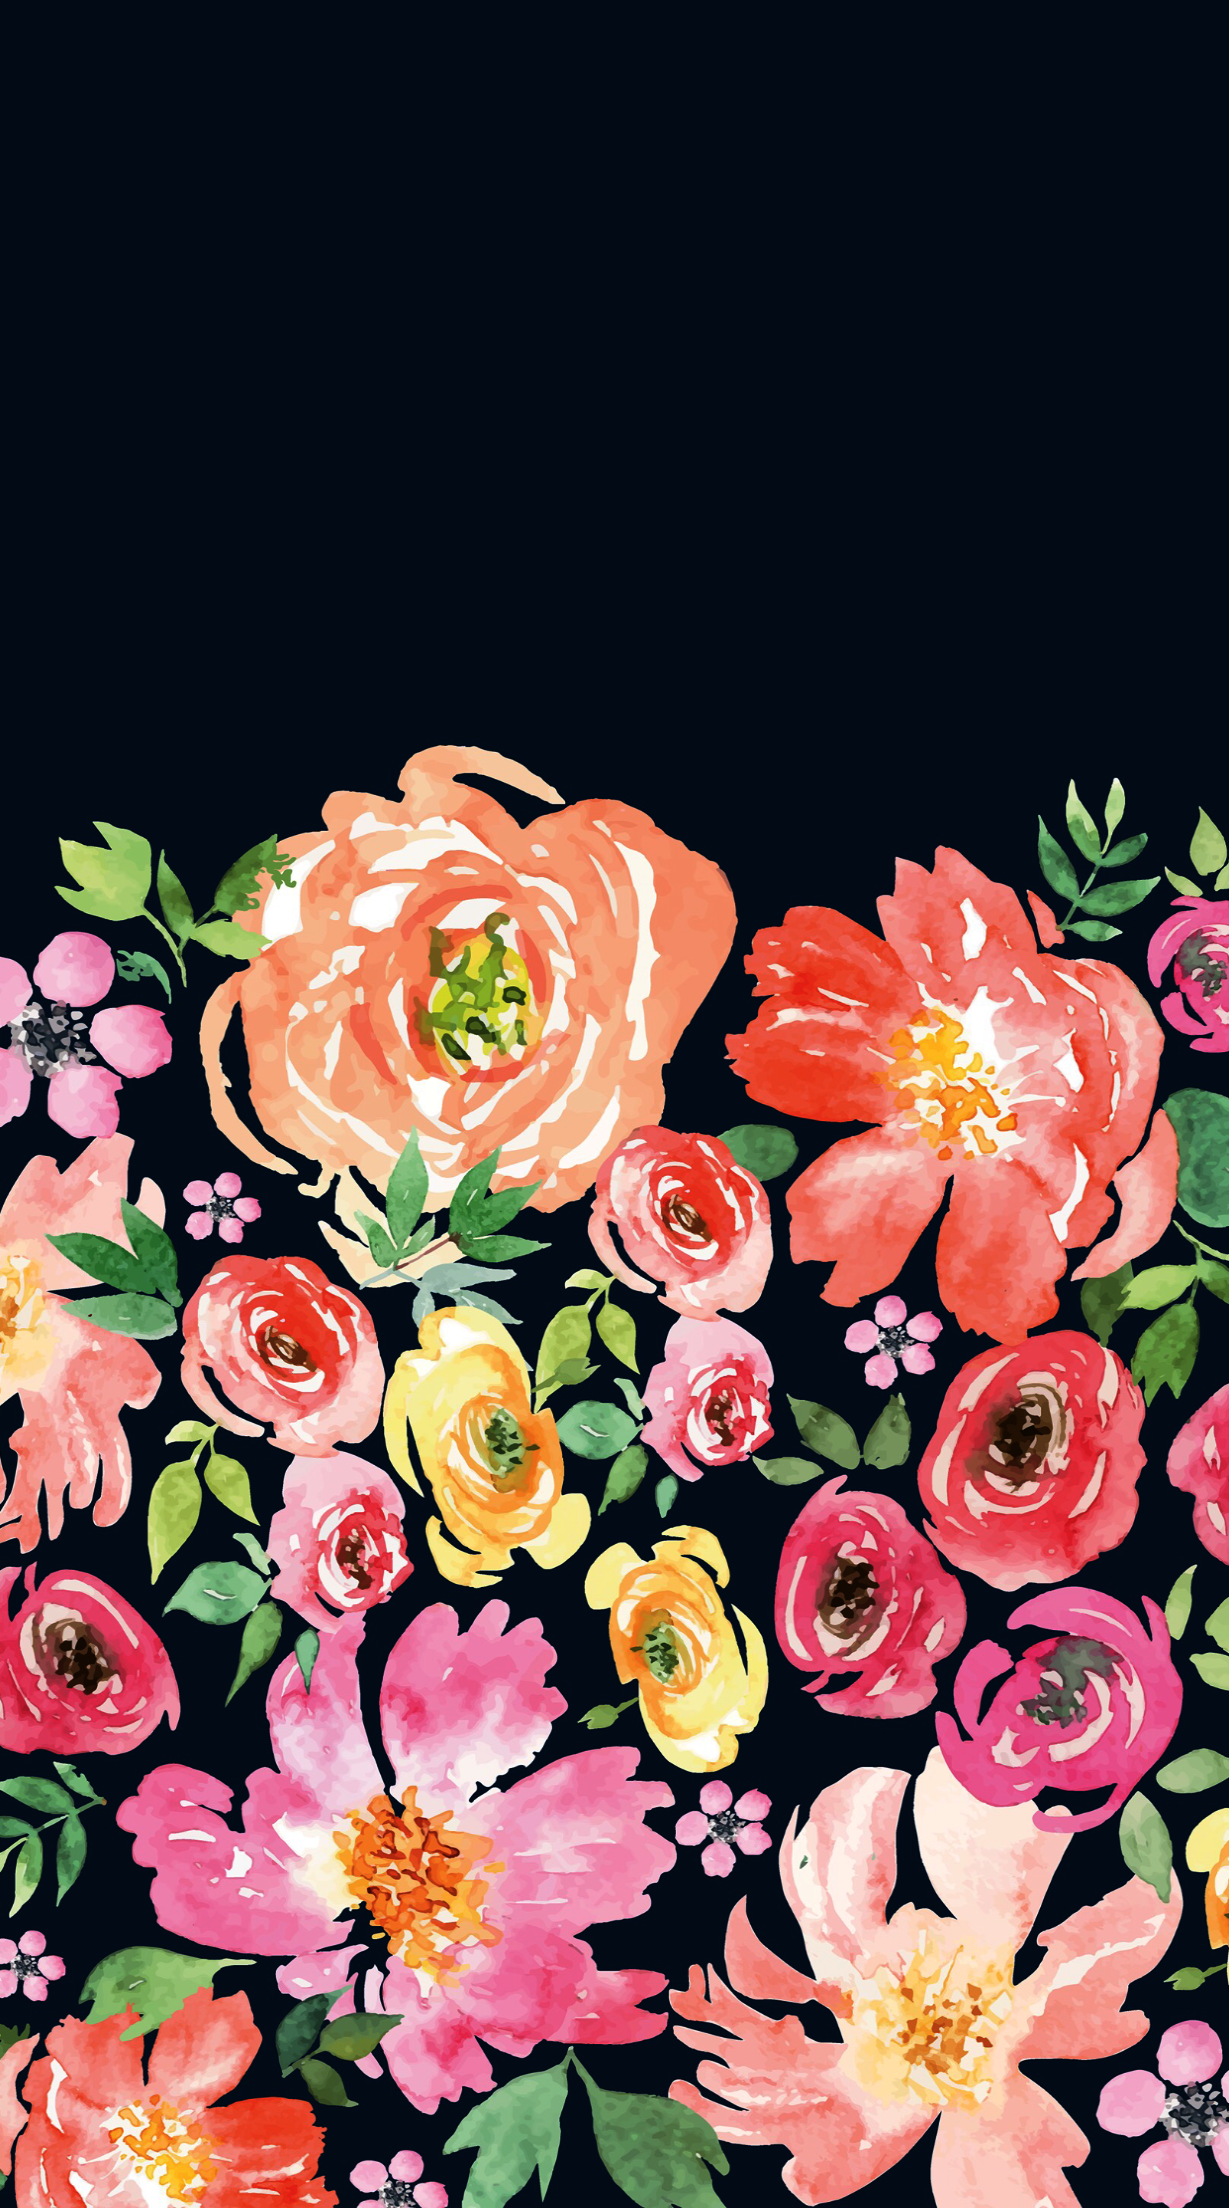 Beautiful Flower Wallpapers For Desktop 974008 Png Images Pngio